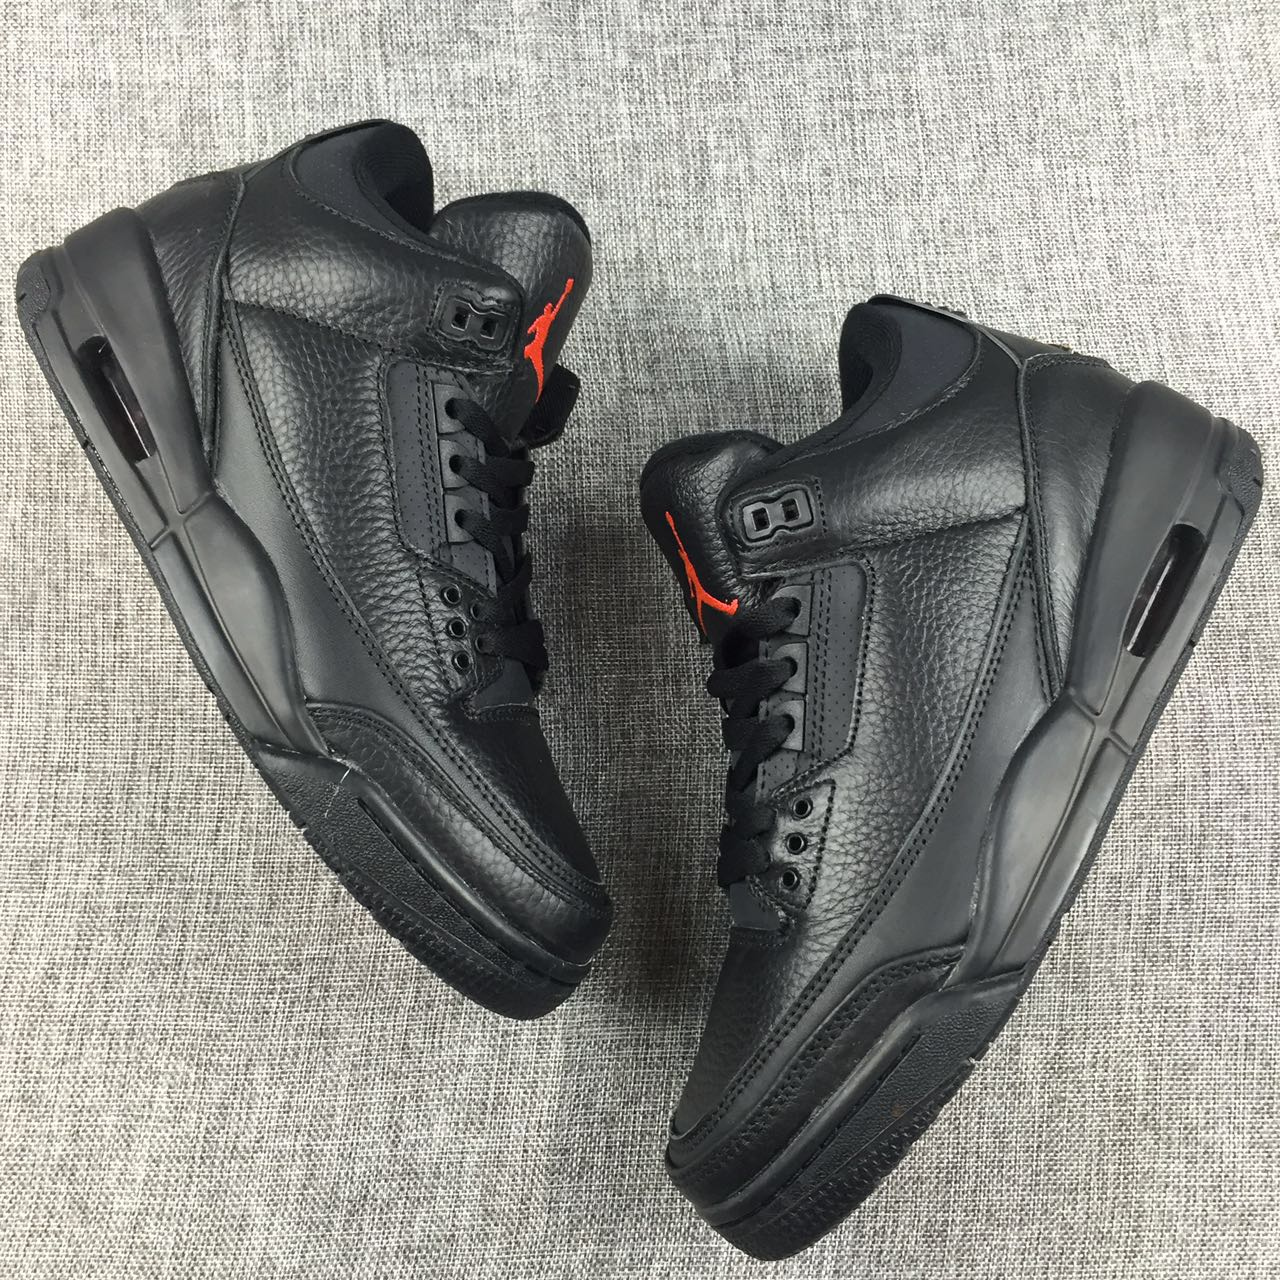 New Air Jordan 3 OVO Black Red Shoes